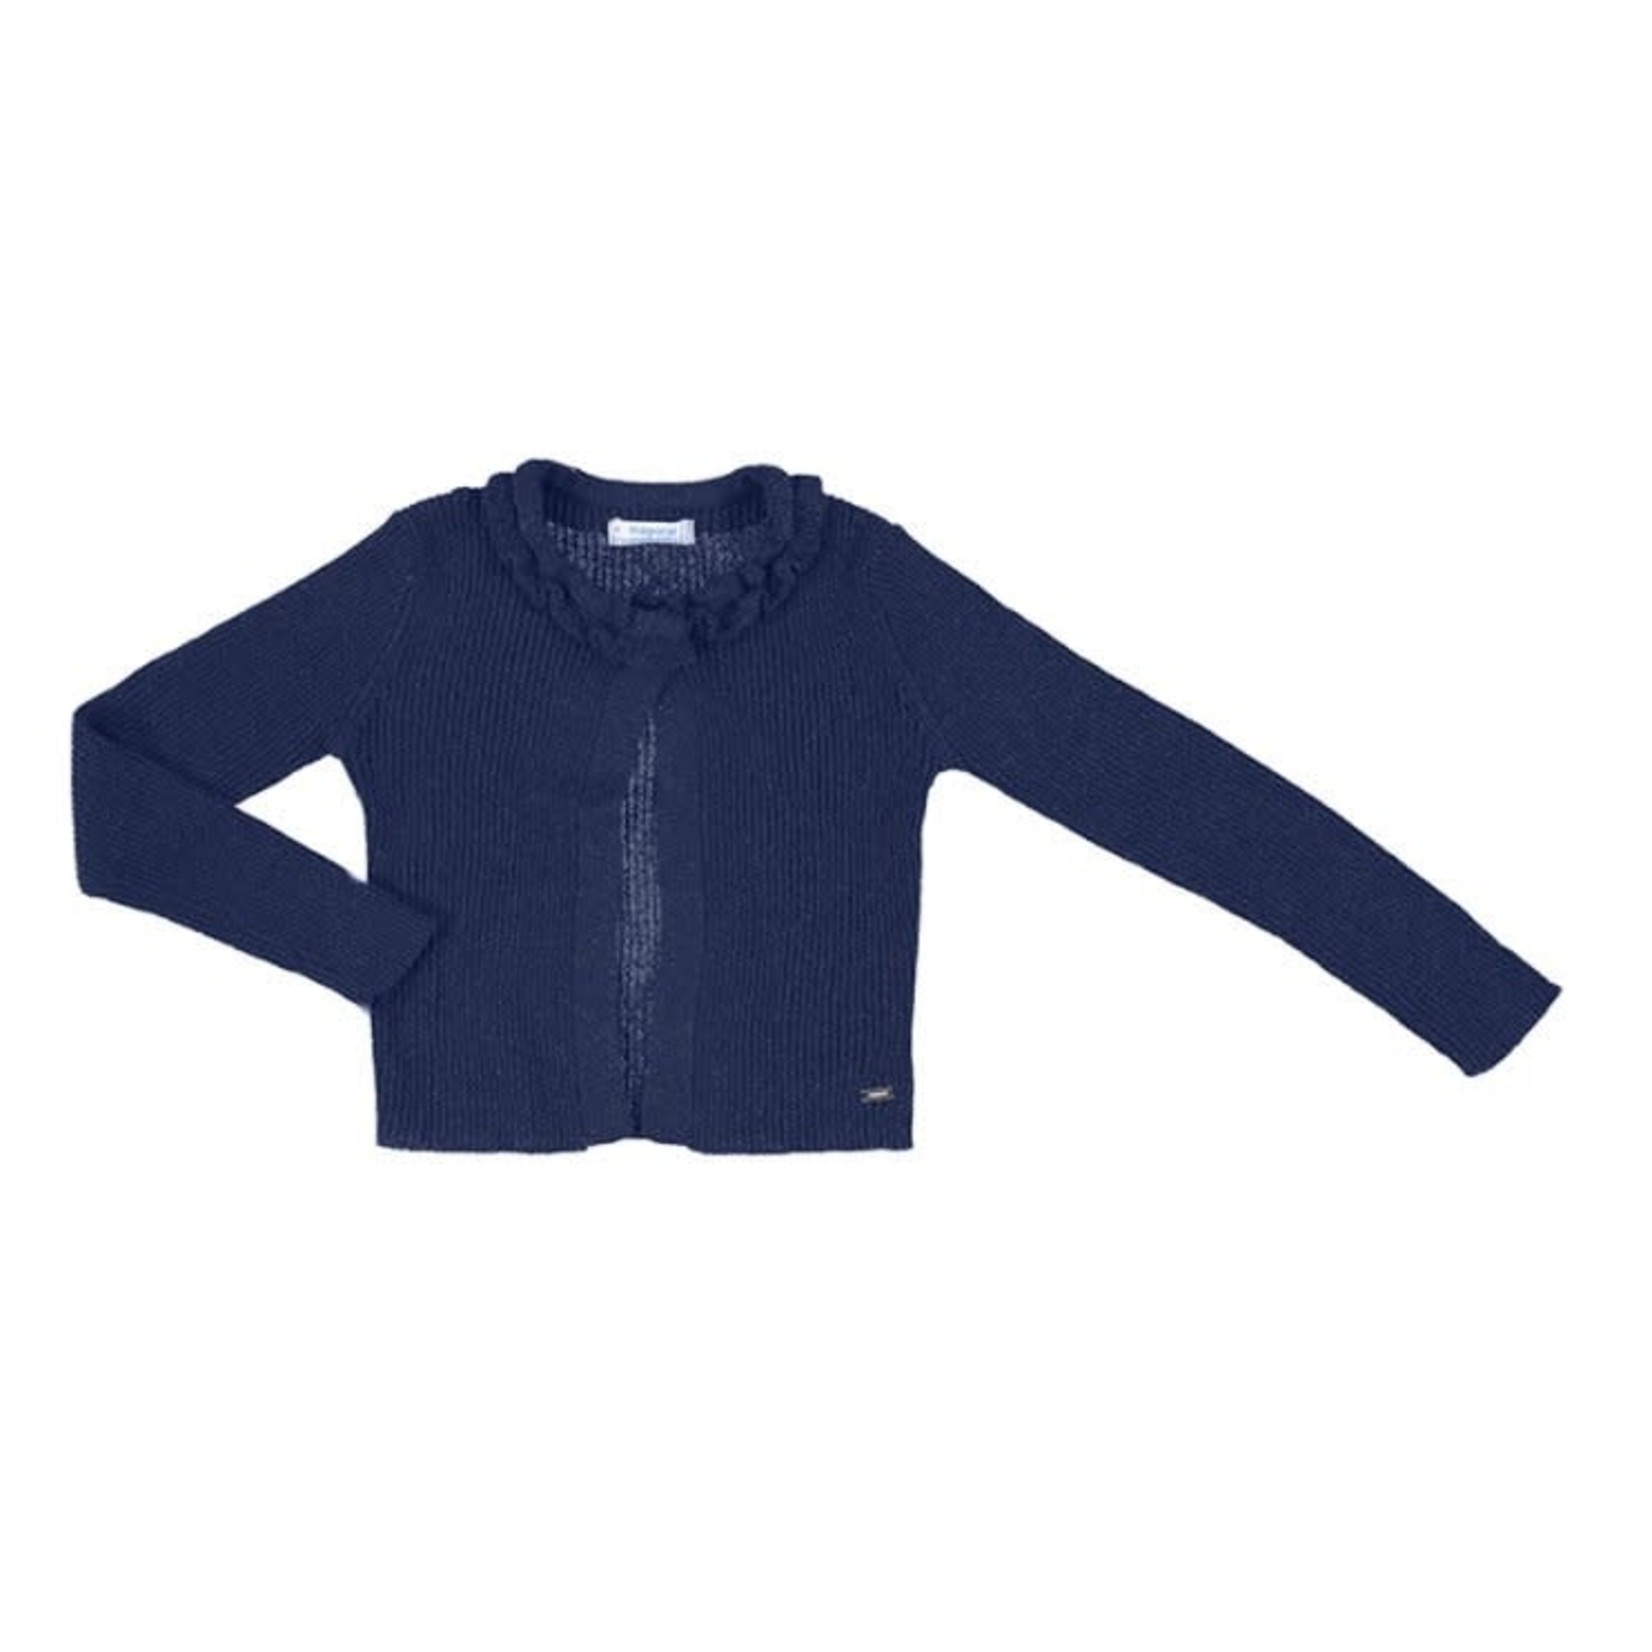 Knitted Cardigans Lurex Navy- Mayoral